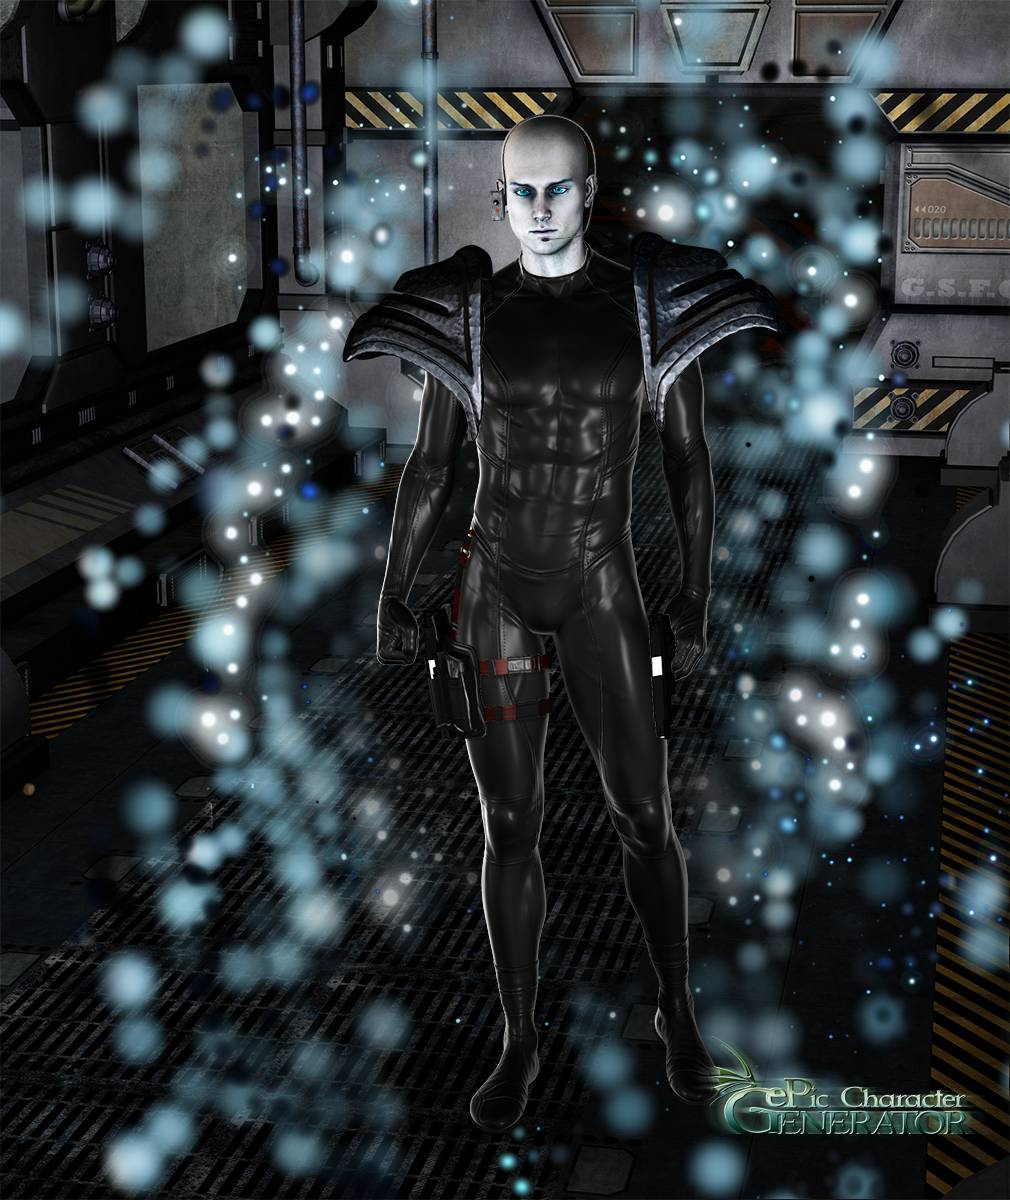 ePic Character Generator Season 2 Male Superhero Screenshot 11